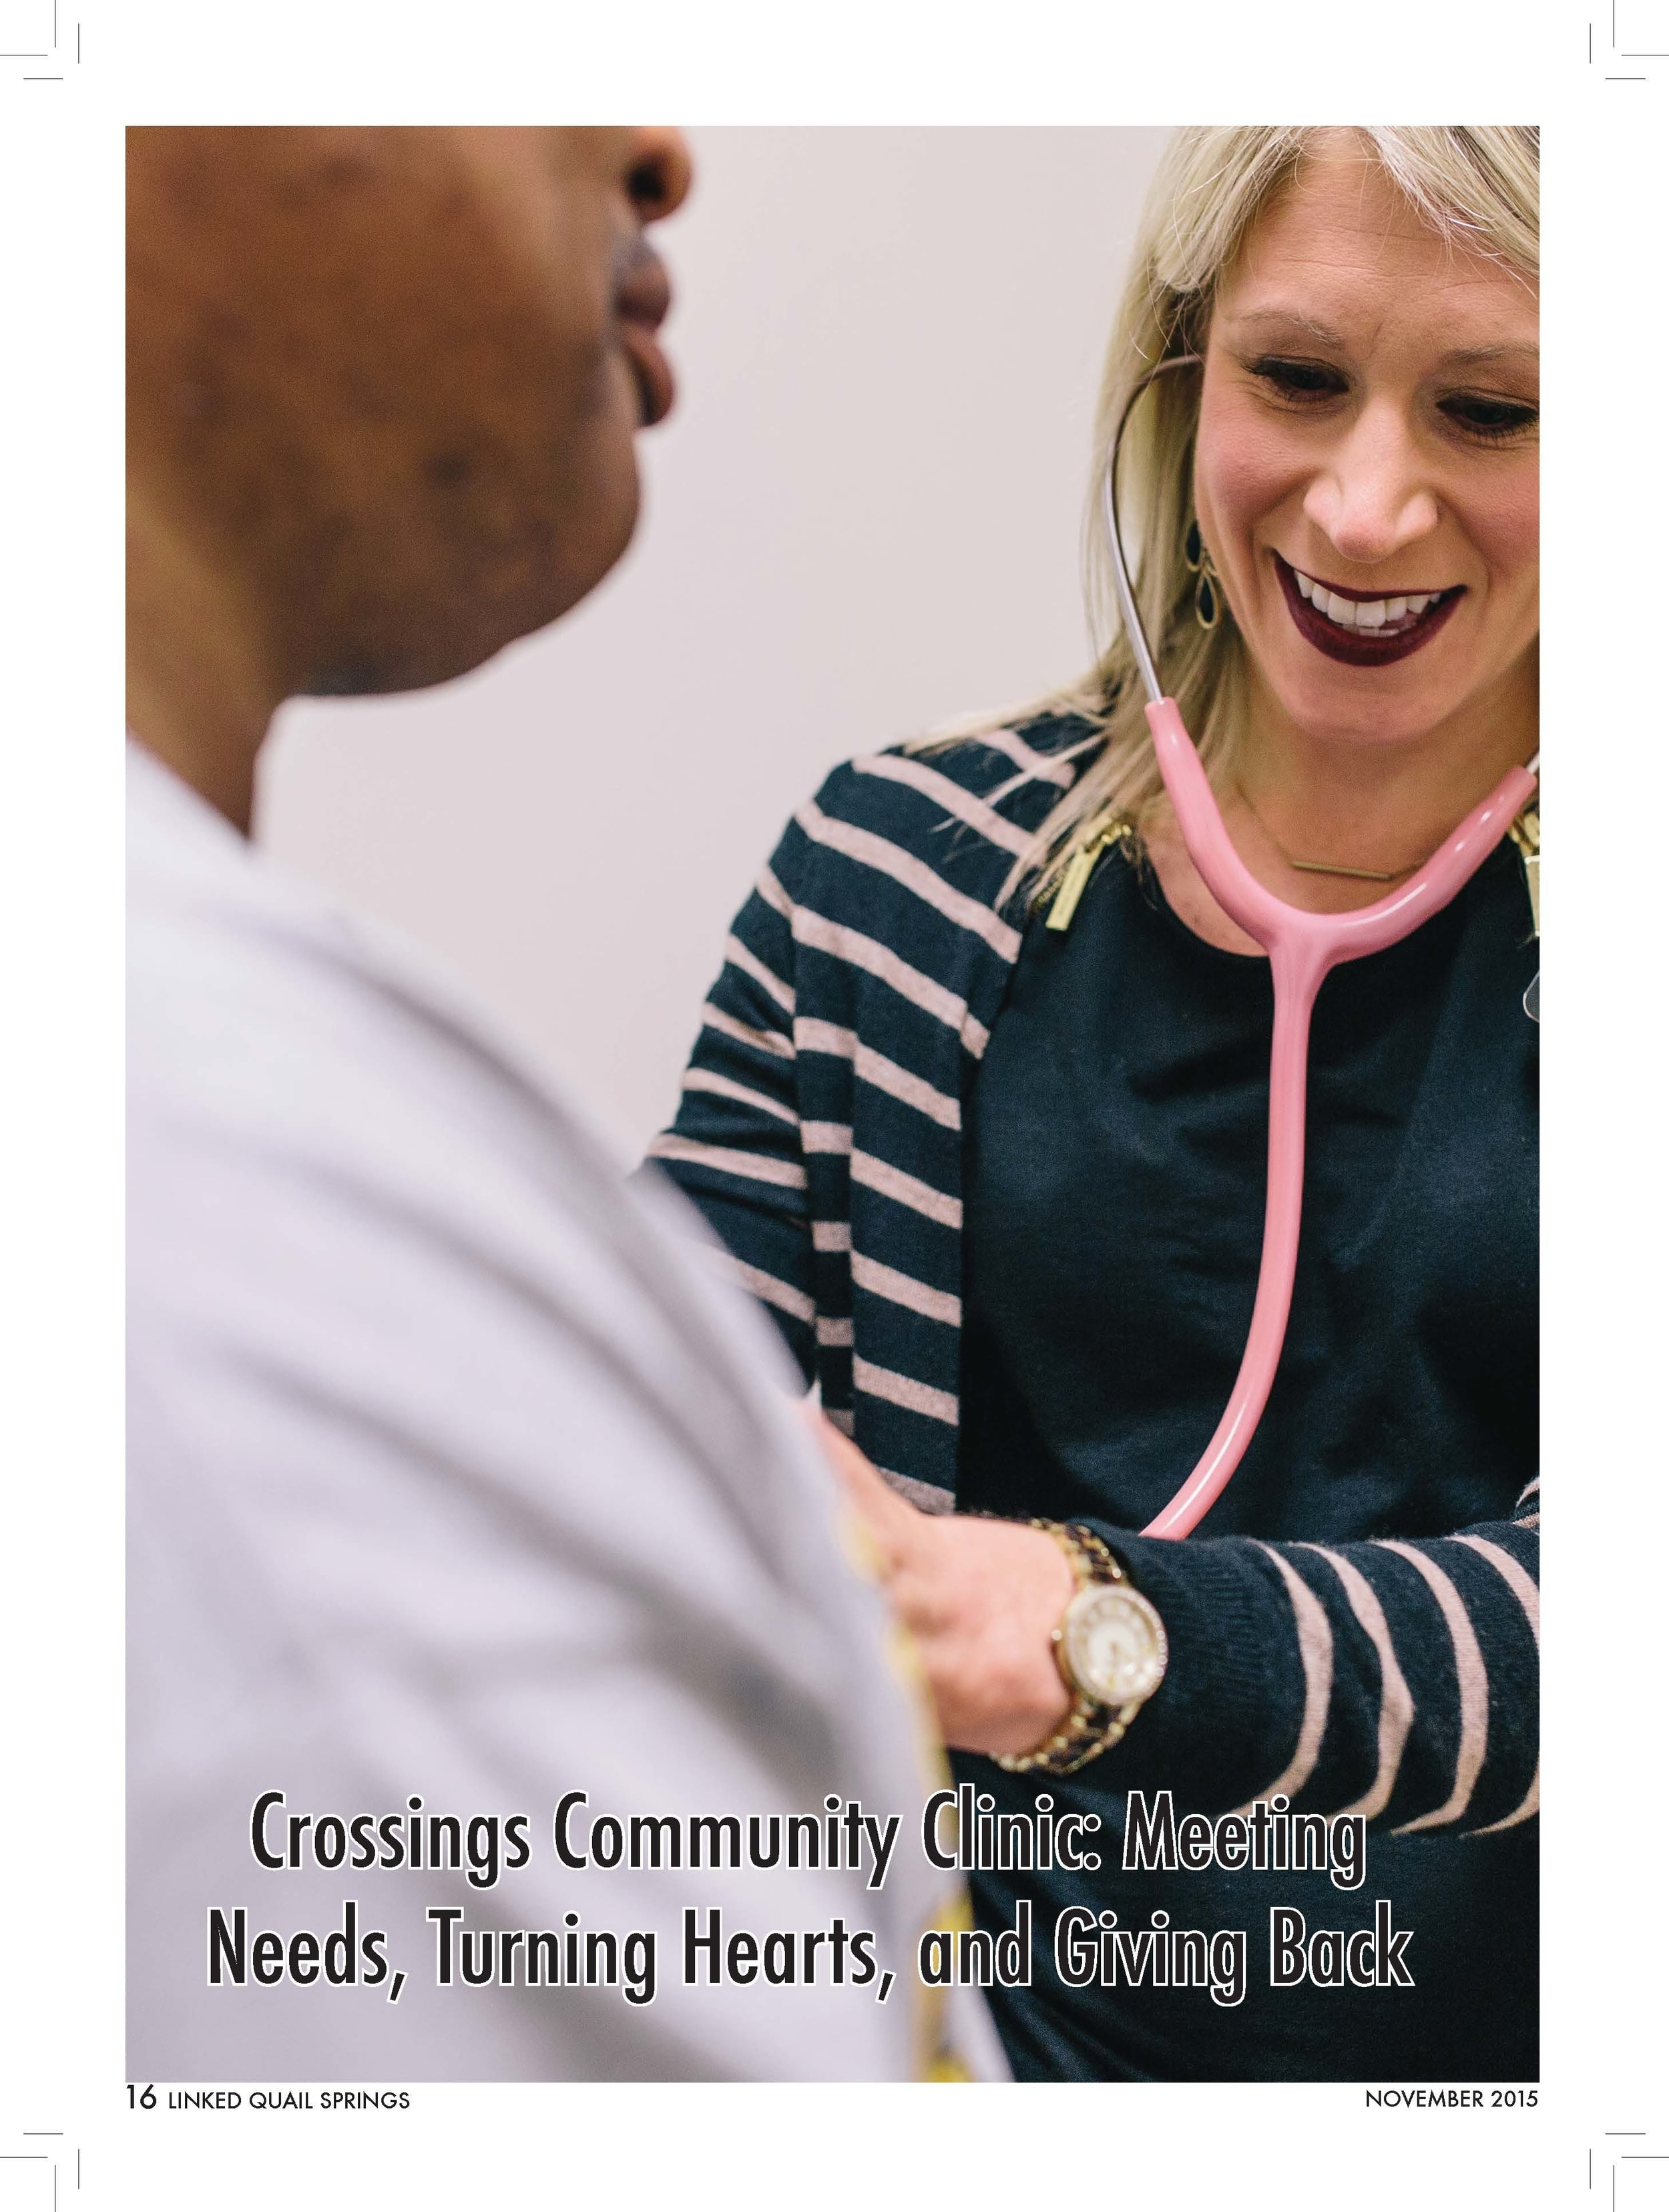 Crossings Community Clinic: Meeting  Needs, Turning Hearts, and Giving Back